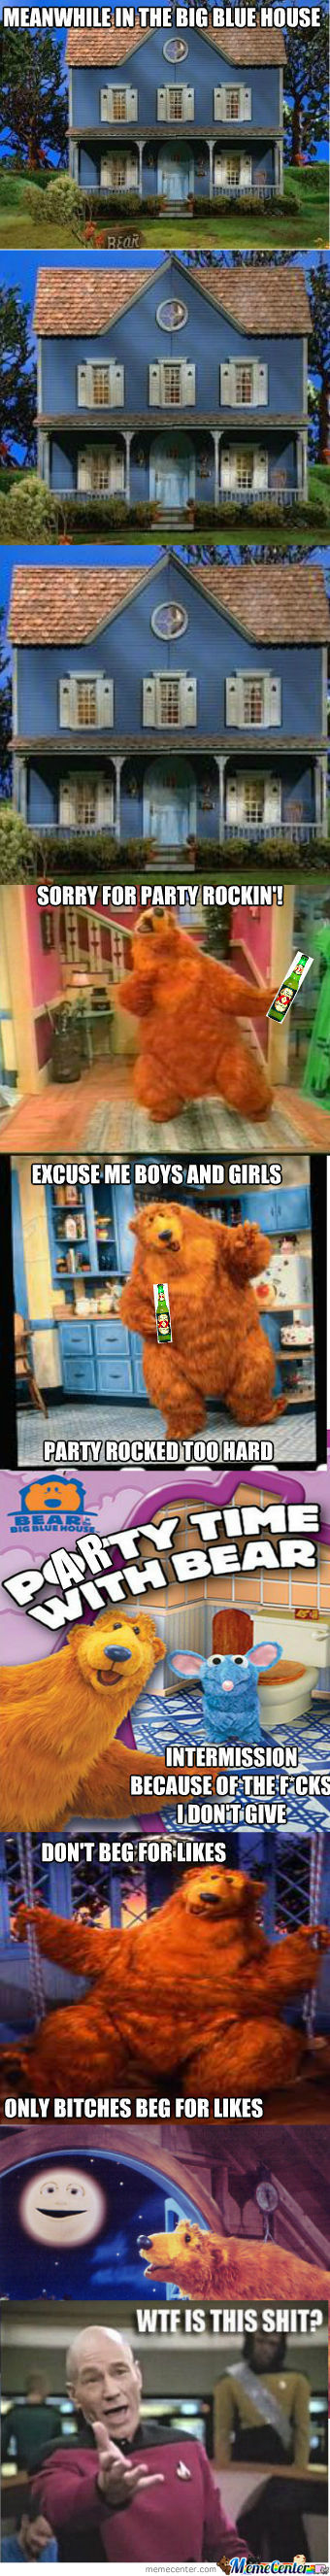 [RMX] Bear In The Big Blue Party House